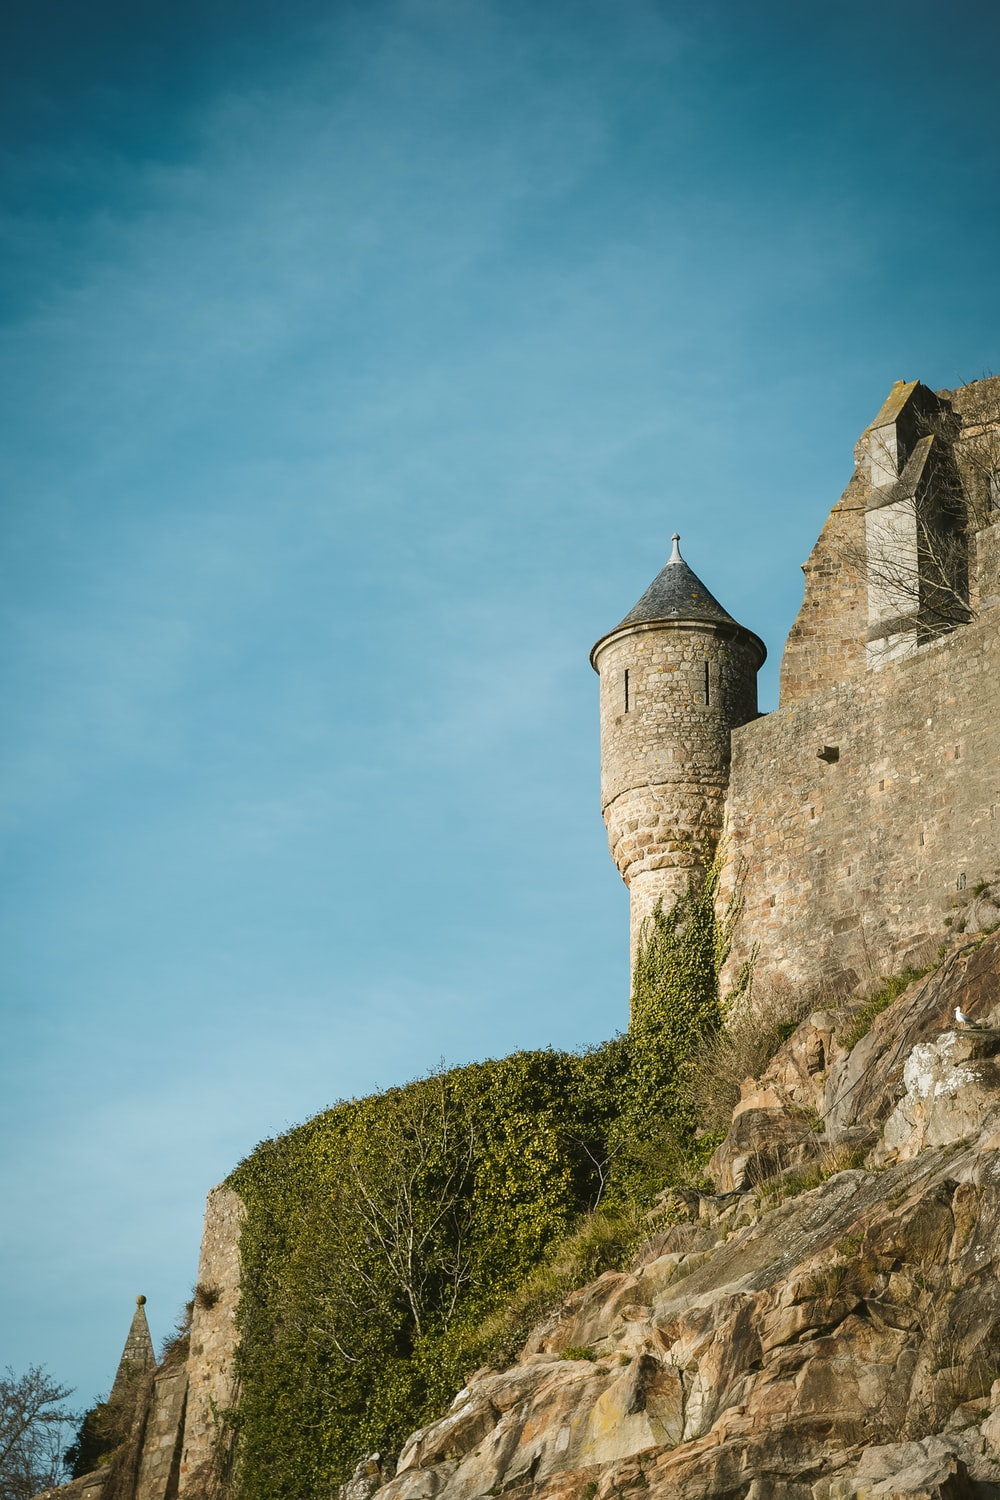 gray castle under blue and white sky